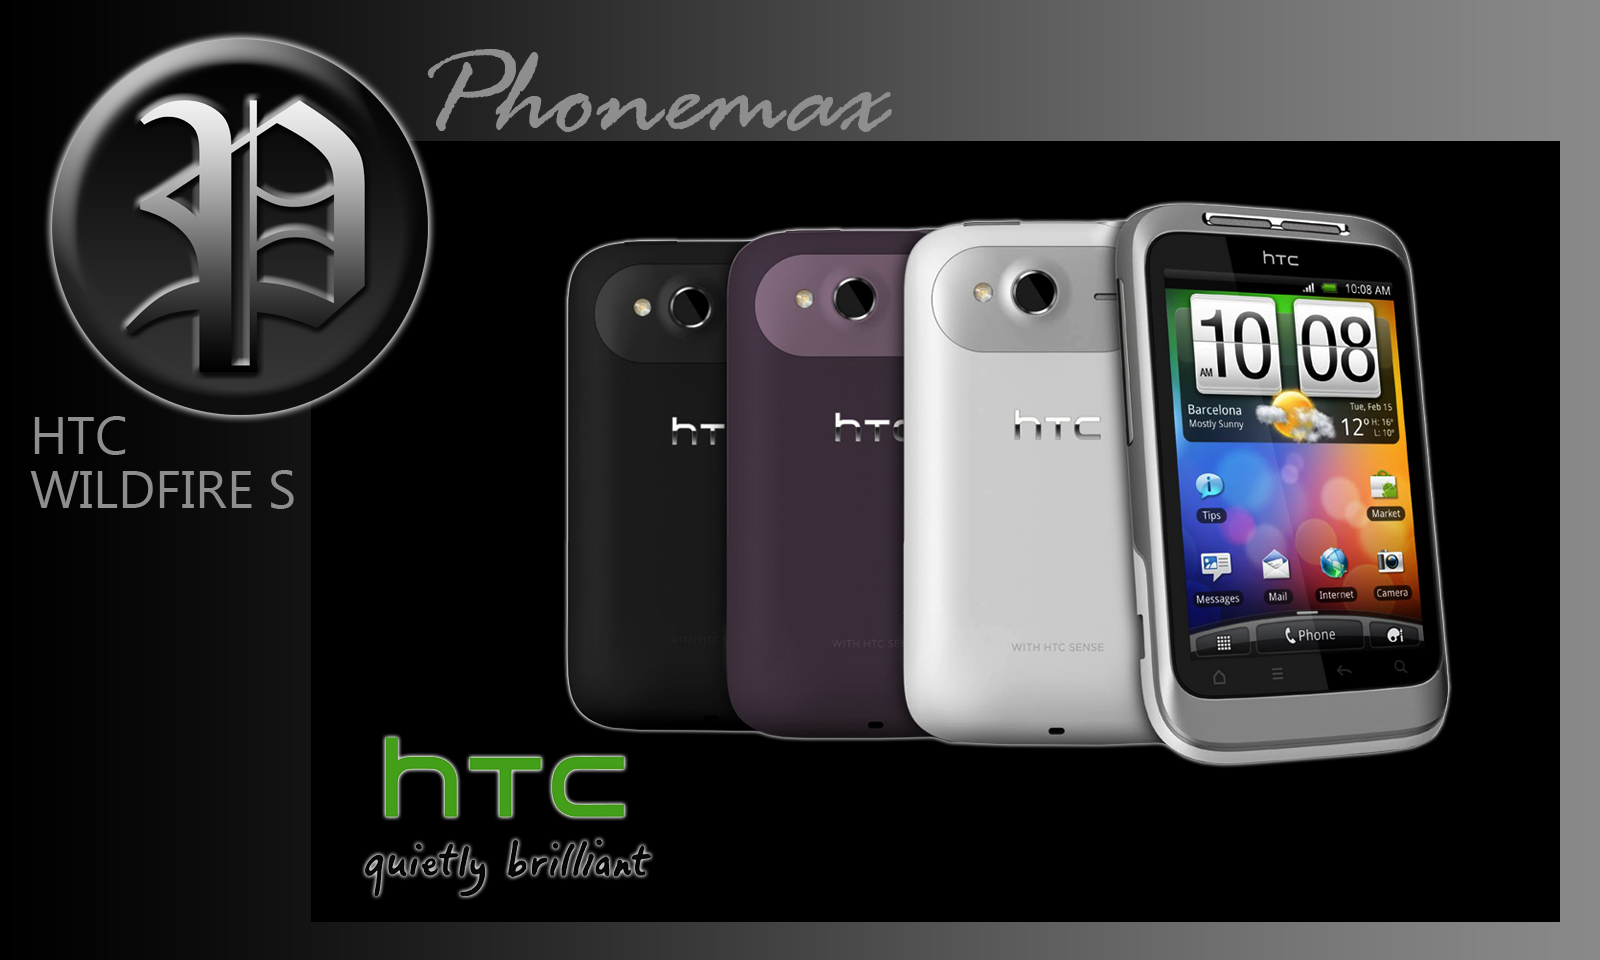 ... we'll now show you how to add words to the HTC Wildfire dictionary. To